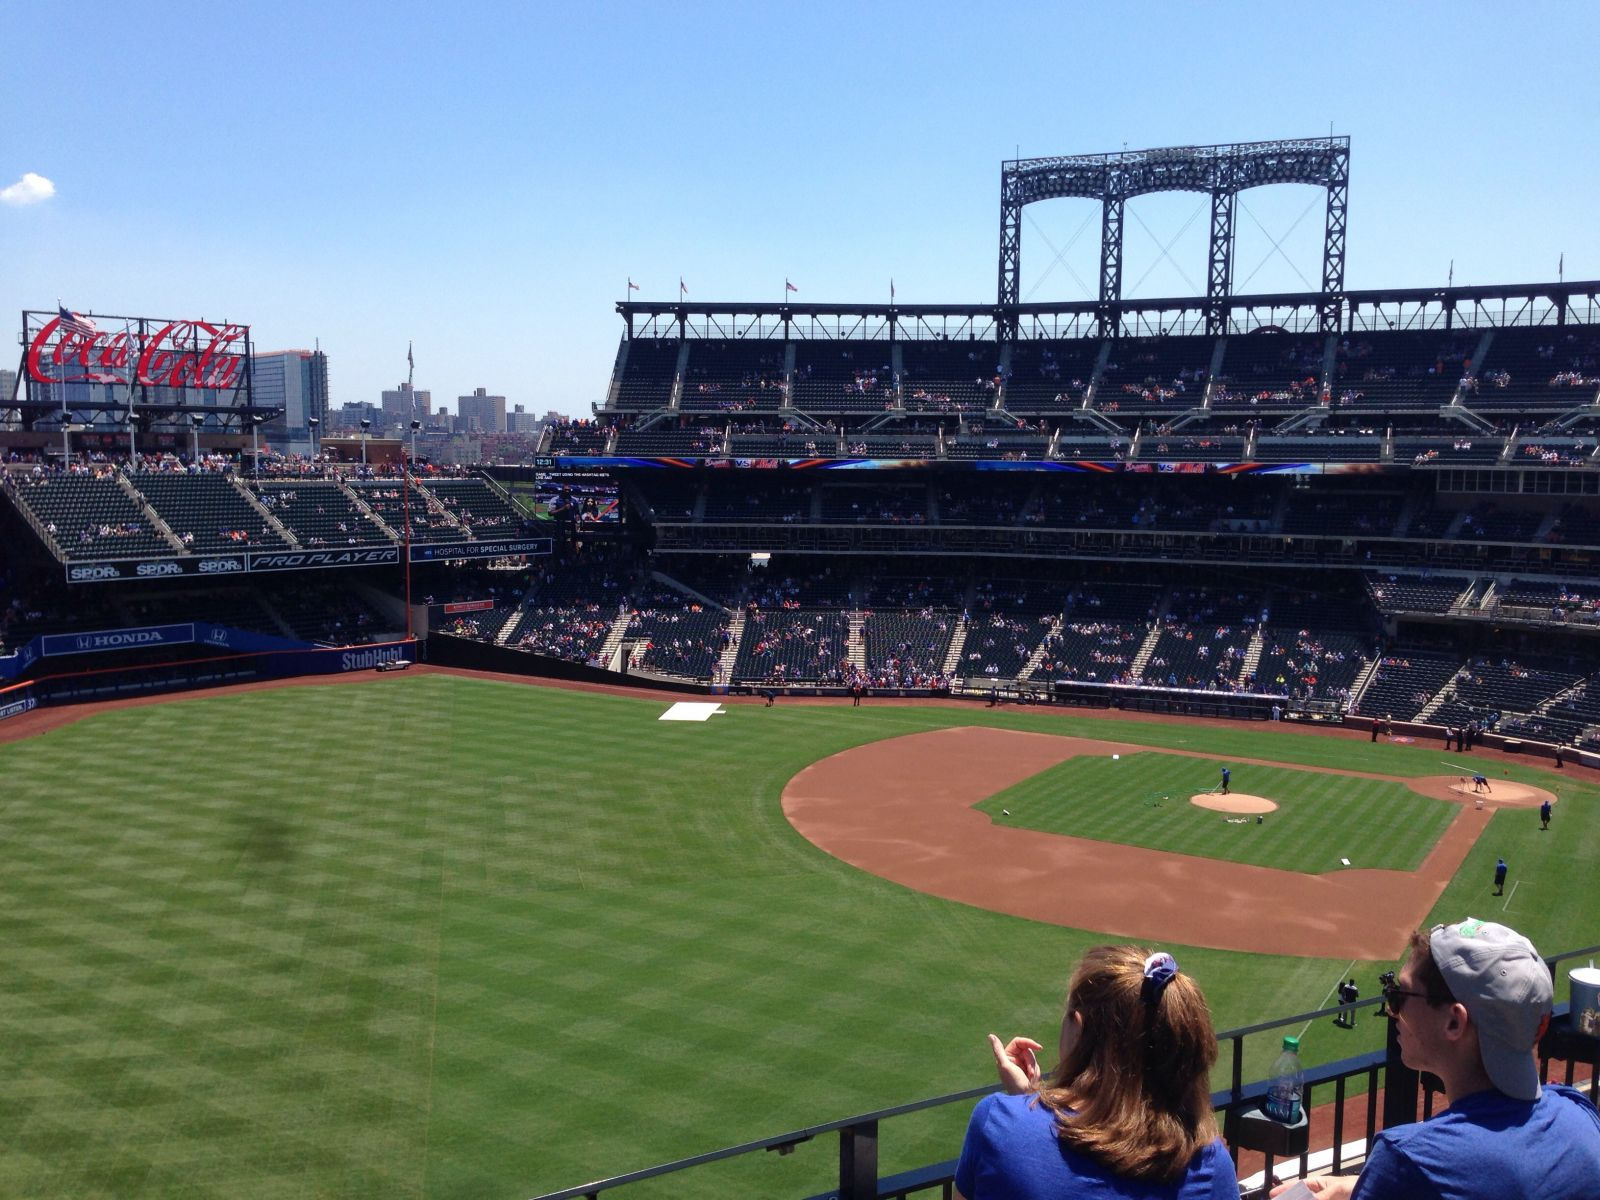 Citi Field : Row 3